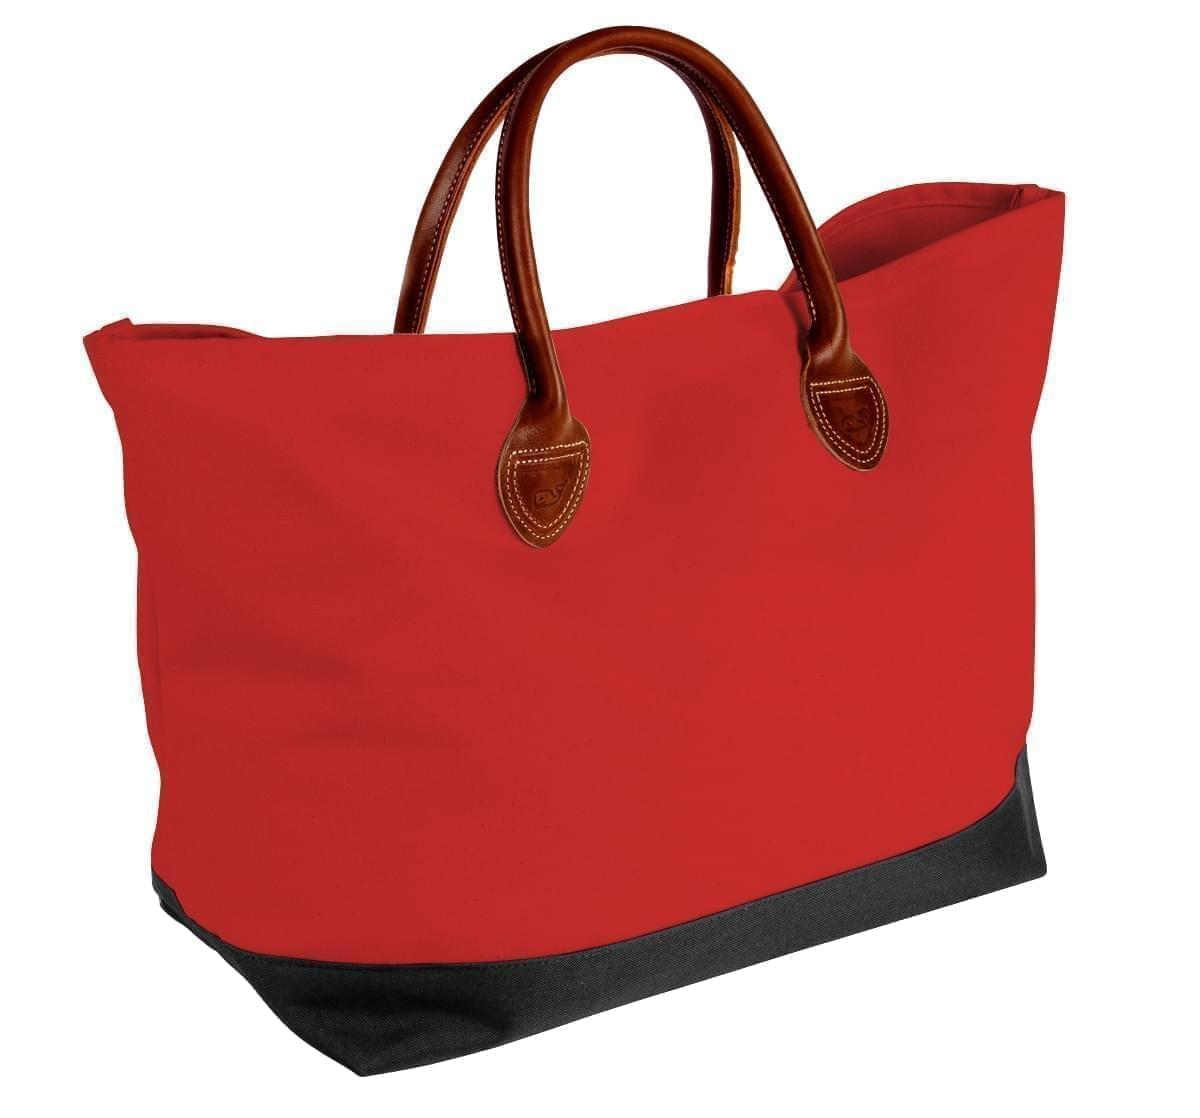 USA Made Canvas Leather Handle Totes, Red-Black, 10899-CE9